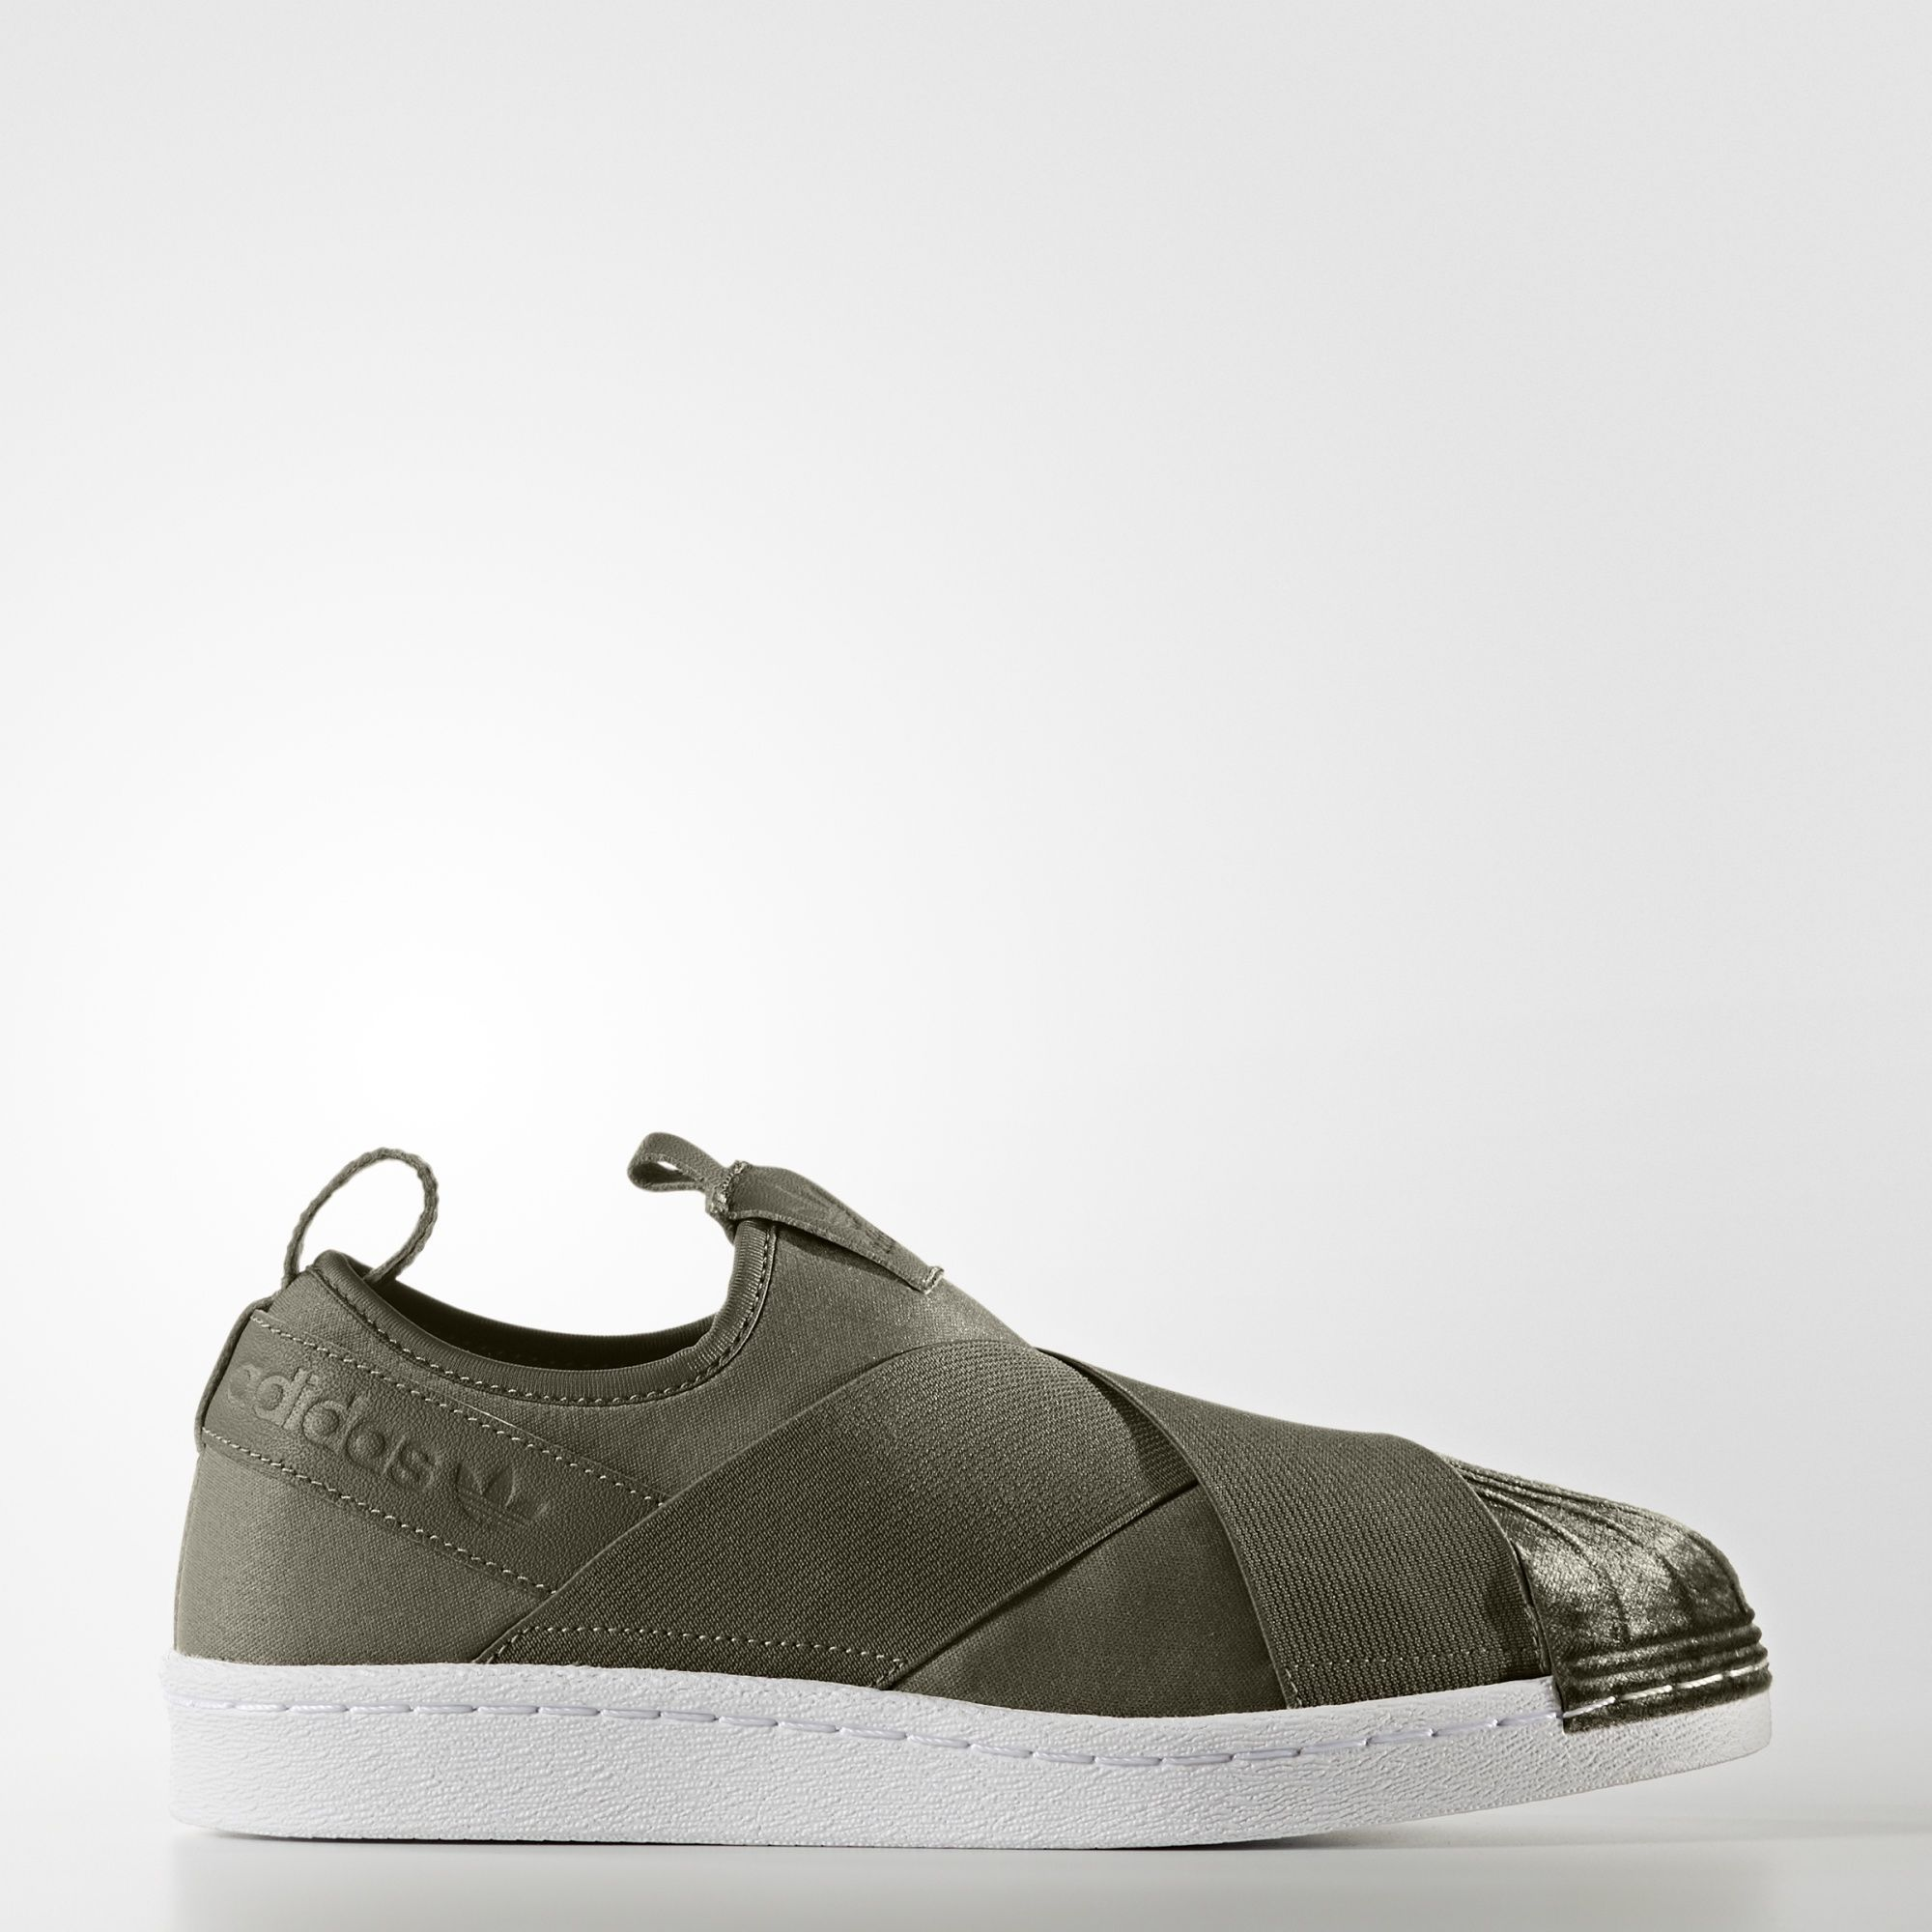 official photos a6ac3 857ad The famous adidas Superstar shoes show off a softer side. These women s  shoes go cozy with muted, autumn tones, a comfy slip-on fit, a luxe velvet  shell toe ...